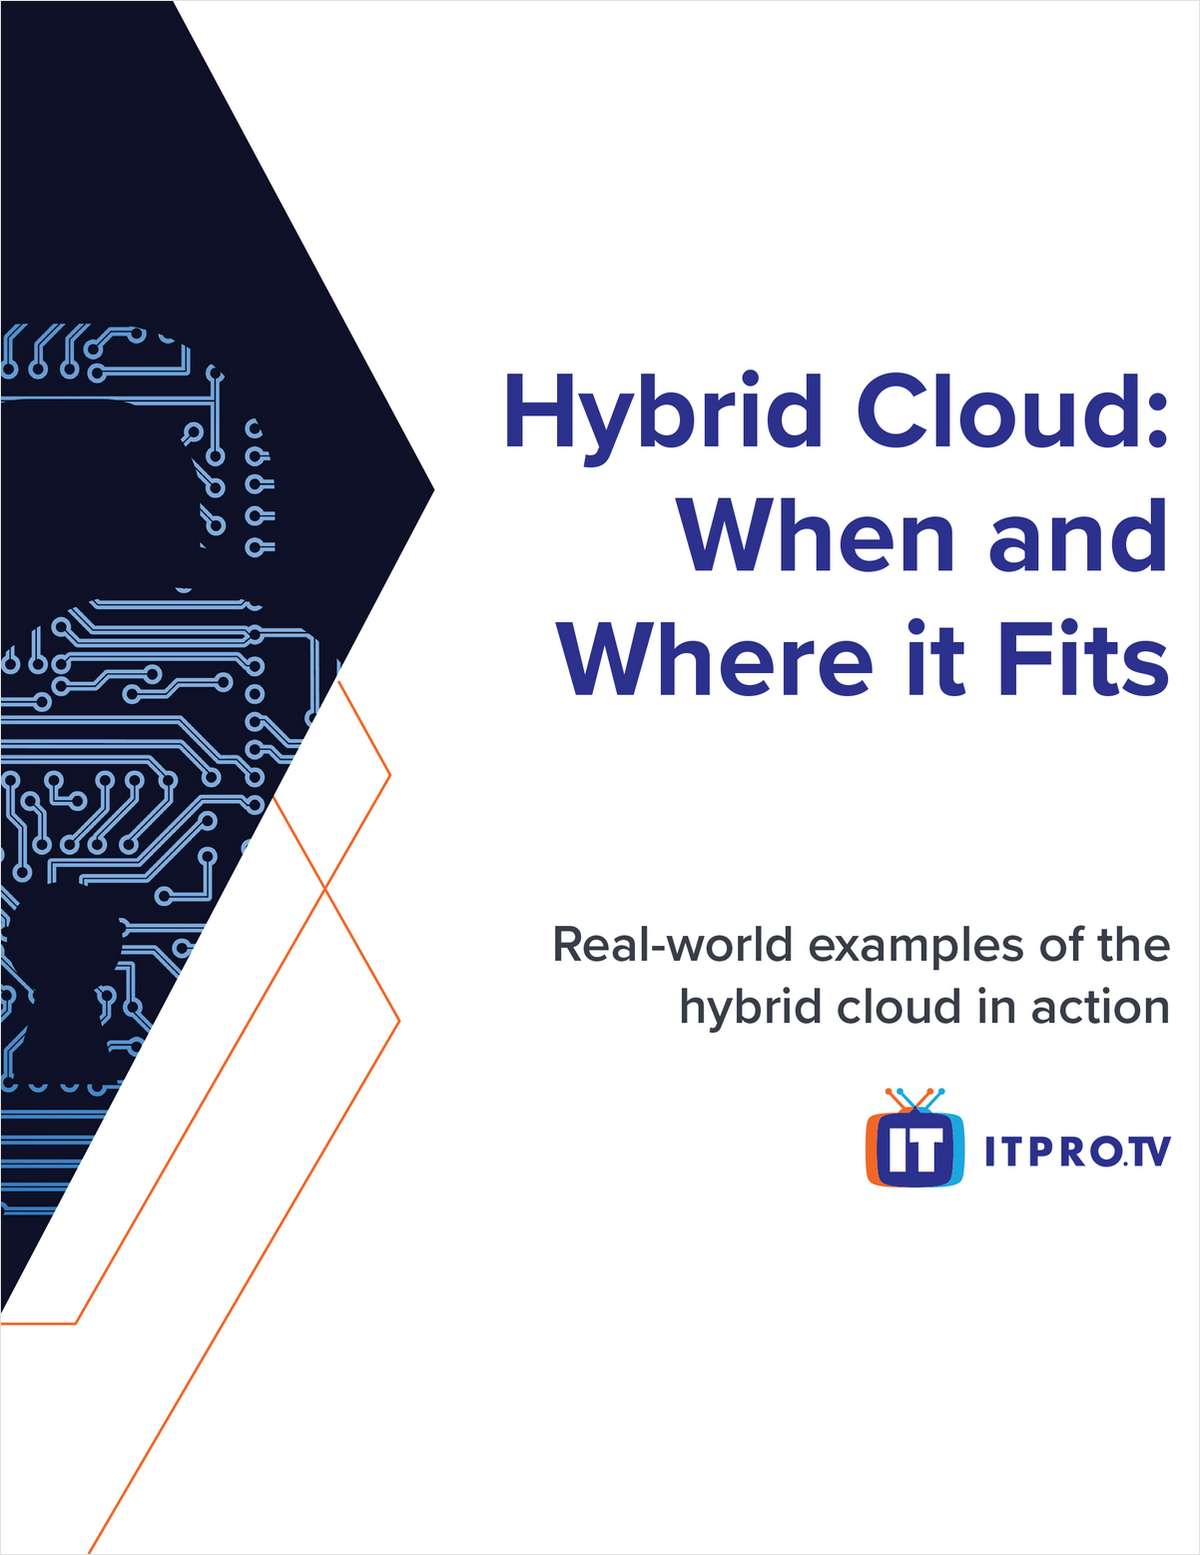 Hybrid Cloud: When and where it fits